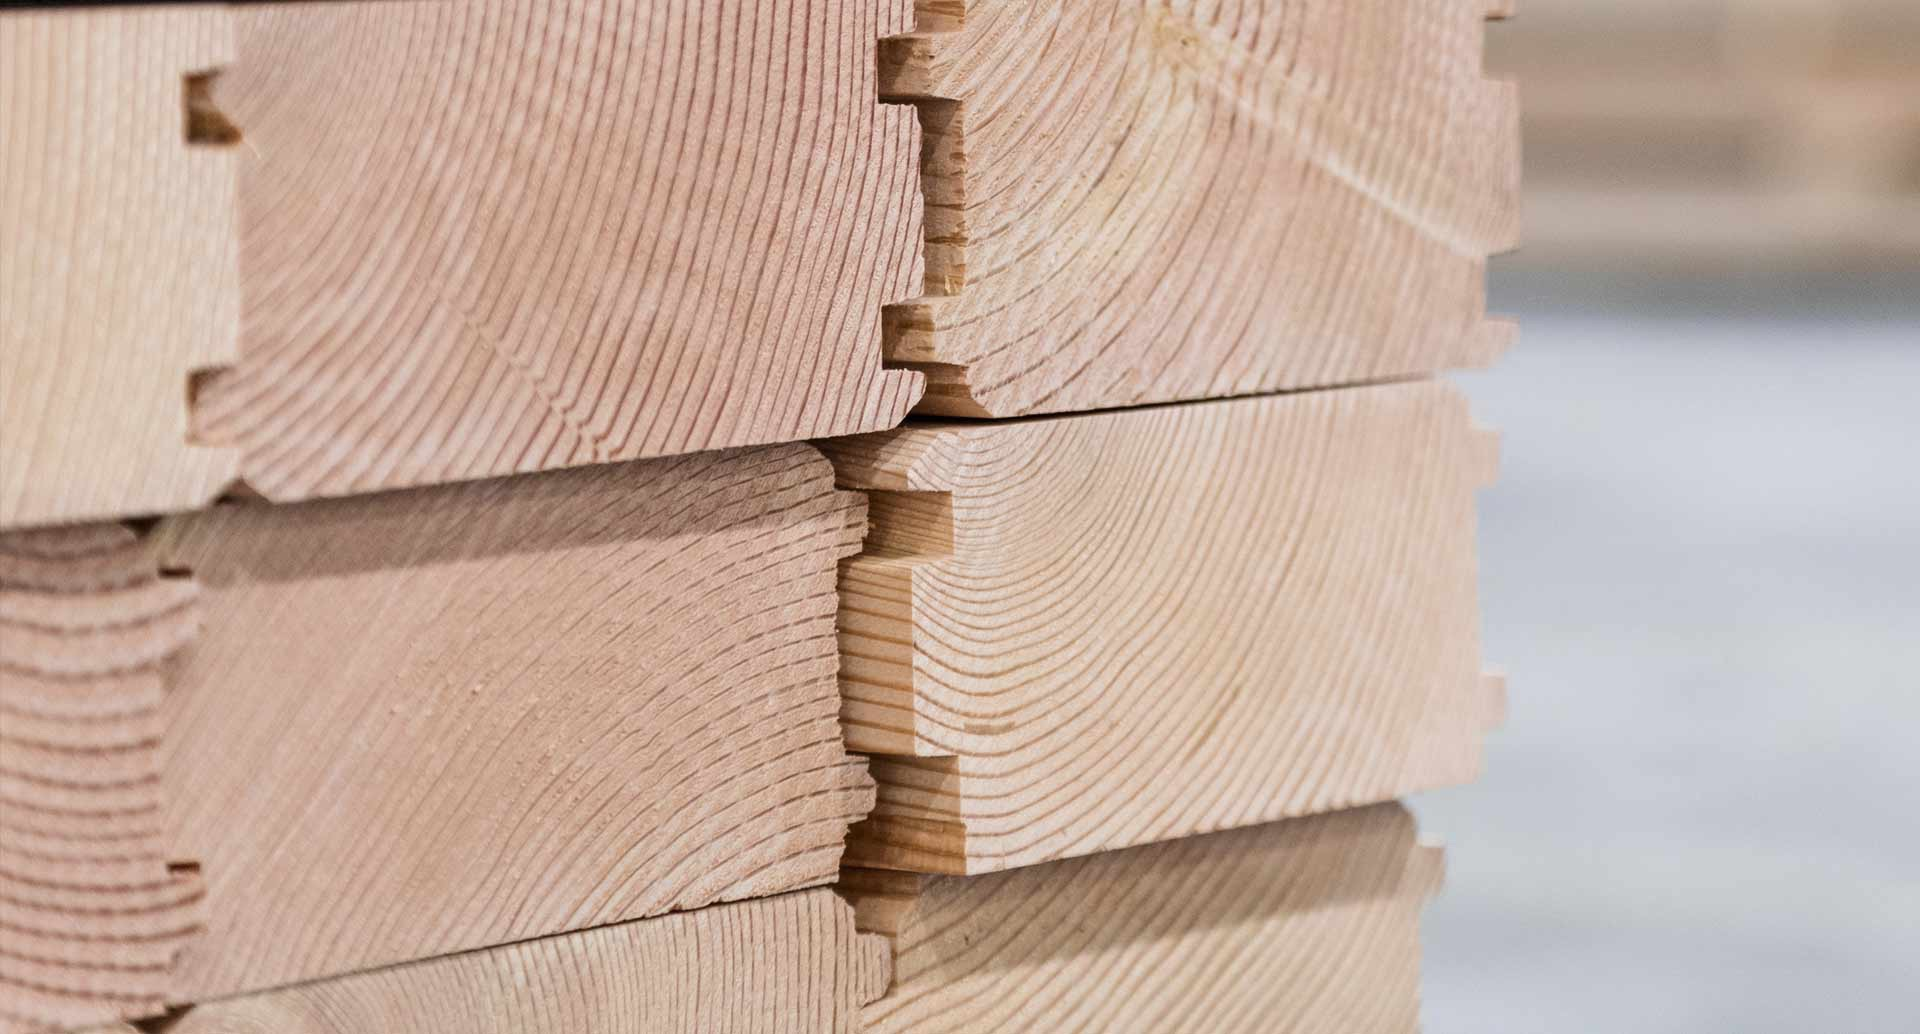 close up of specialty timber product tongue and groove cross section view